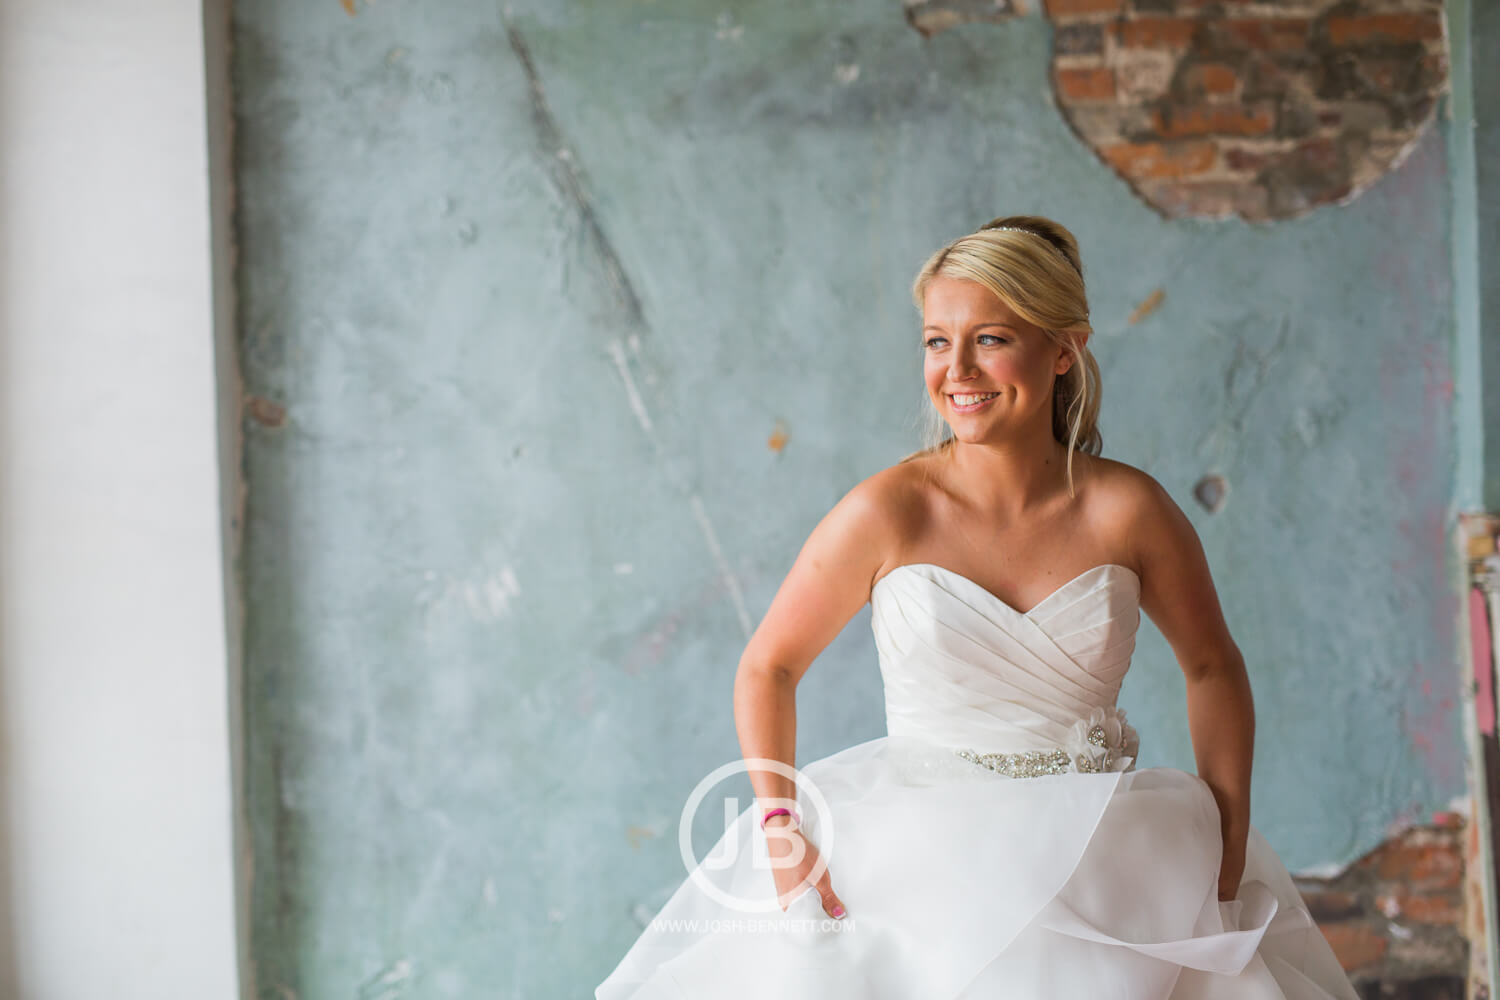 Dorable Wedding Dresses Nashville Gallery - All Wedding Dresses ...